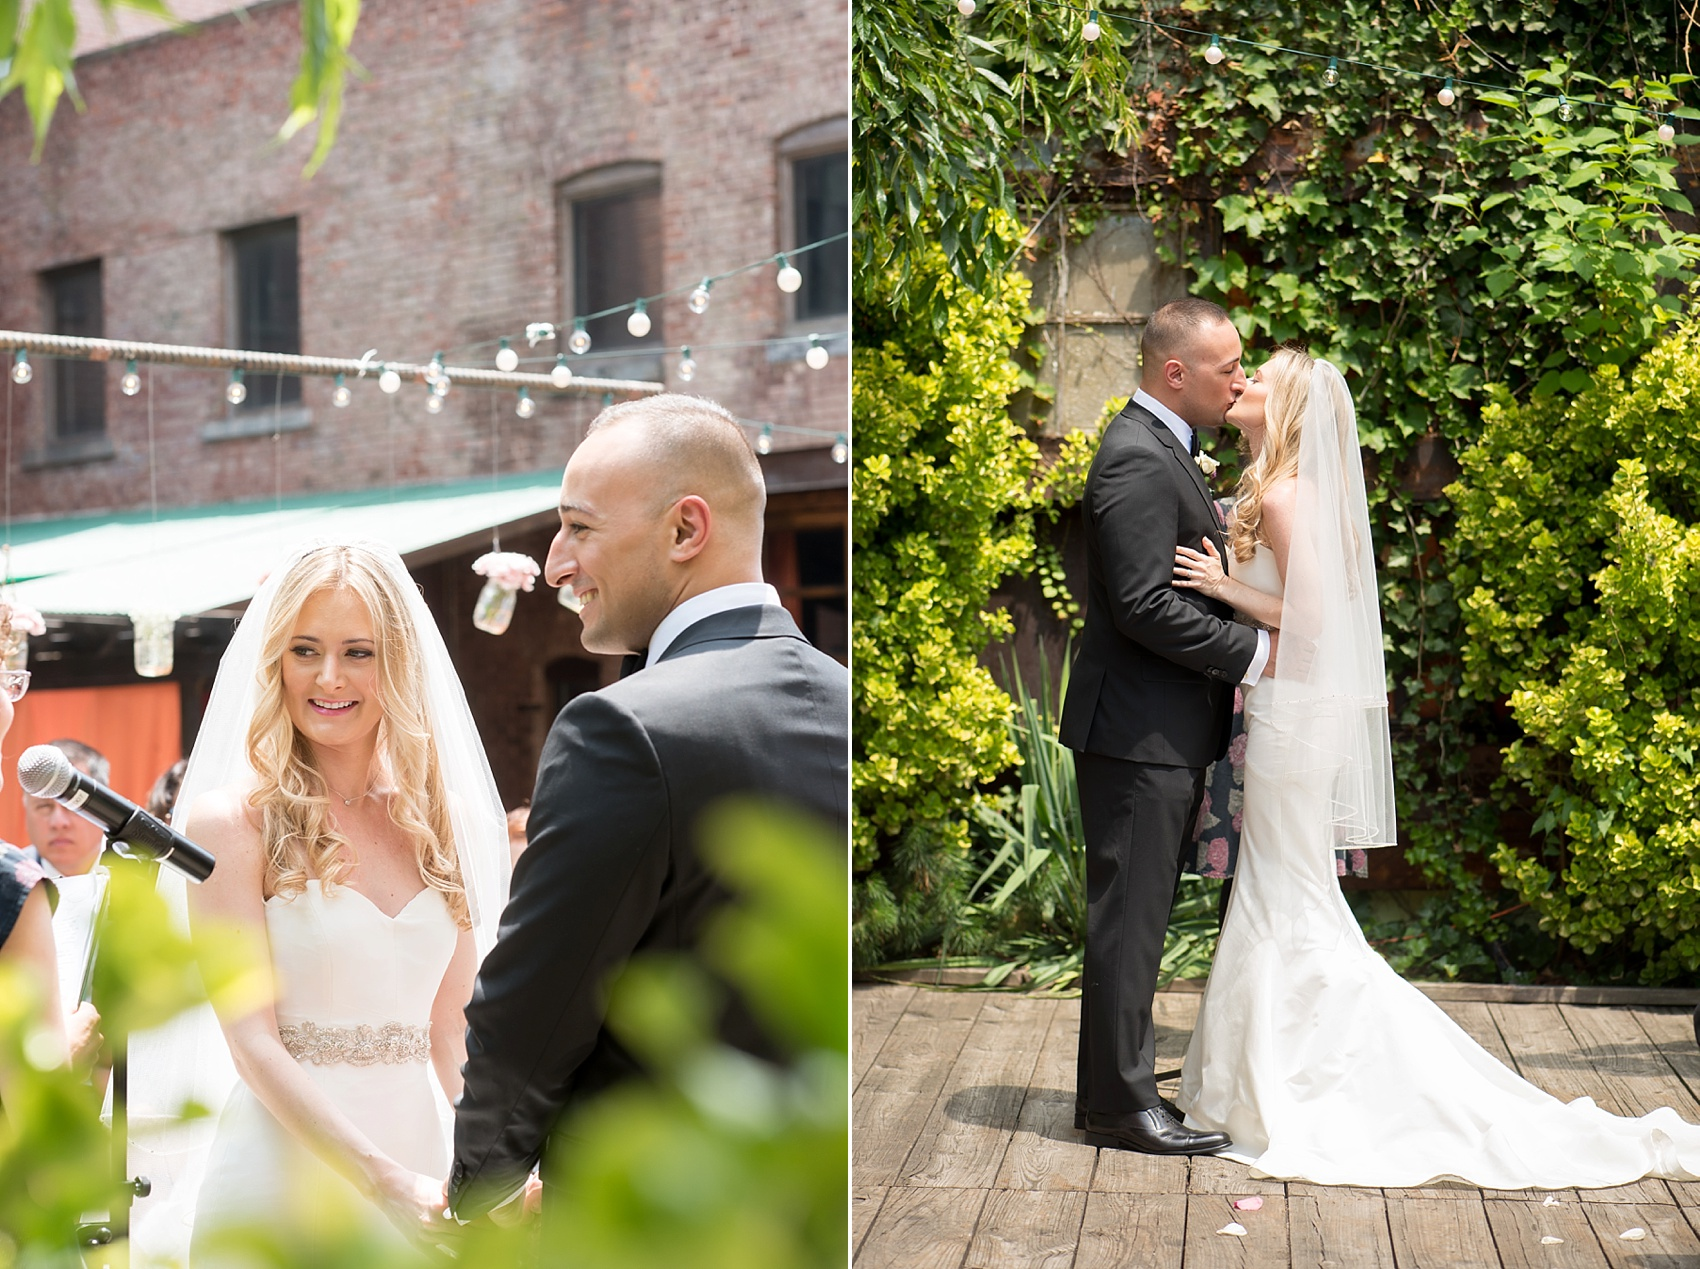 My Moon Brooklyn, Williamsburg NYC, intimate wedding. Photos by Mikkel Paige Photography.